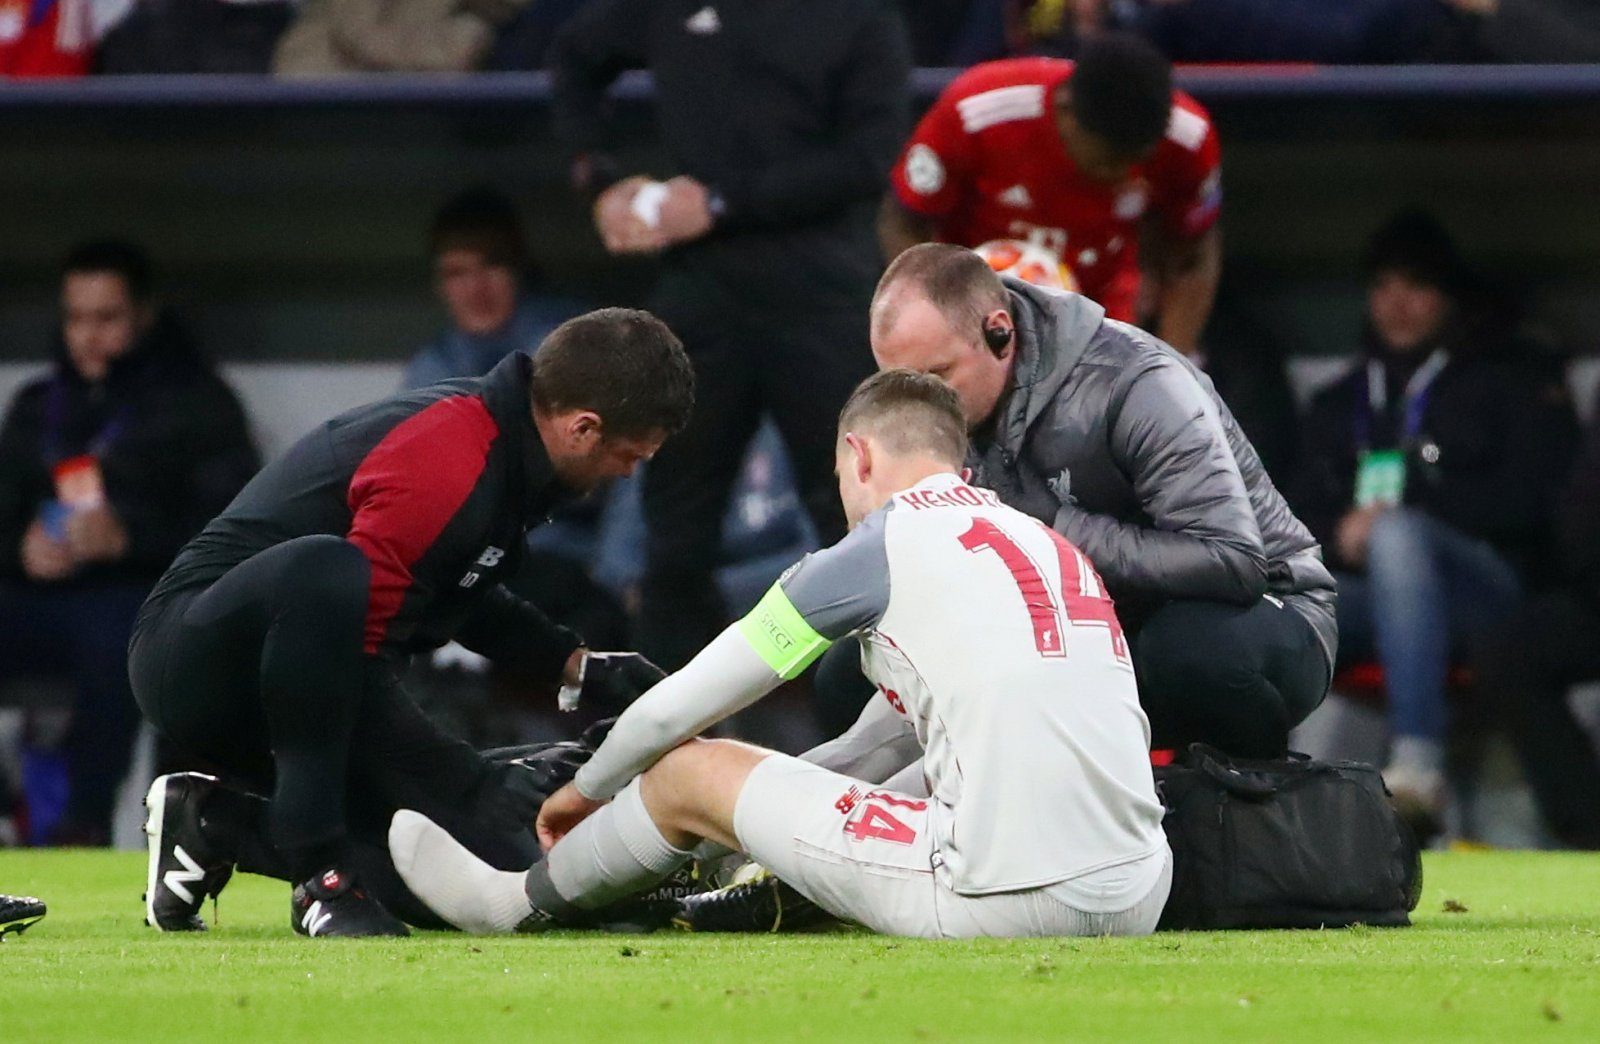 Liverpool: Jordan Henderson injury could be good news for Naby Keita